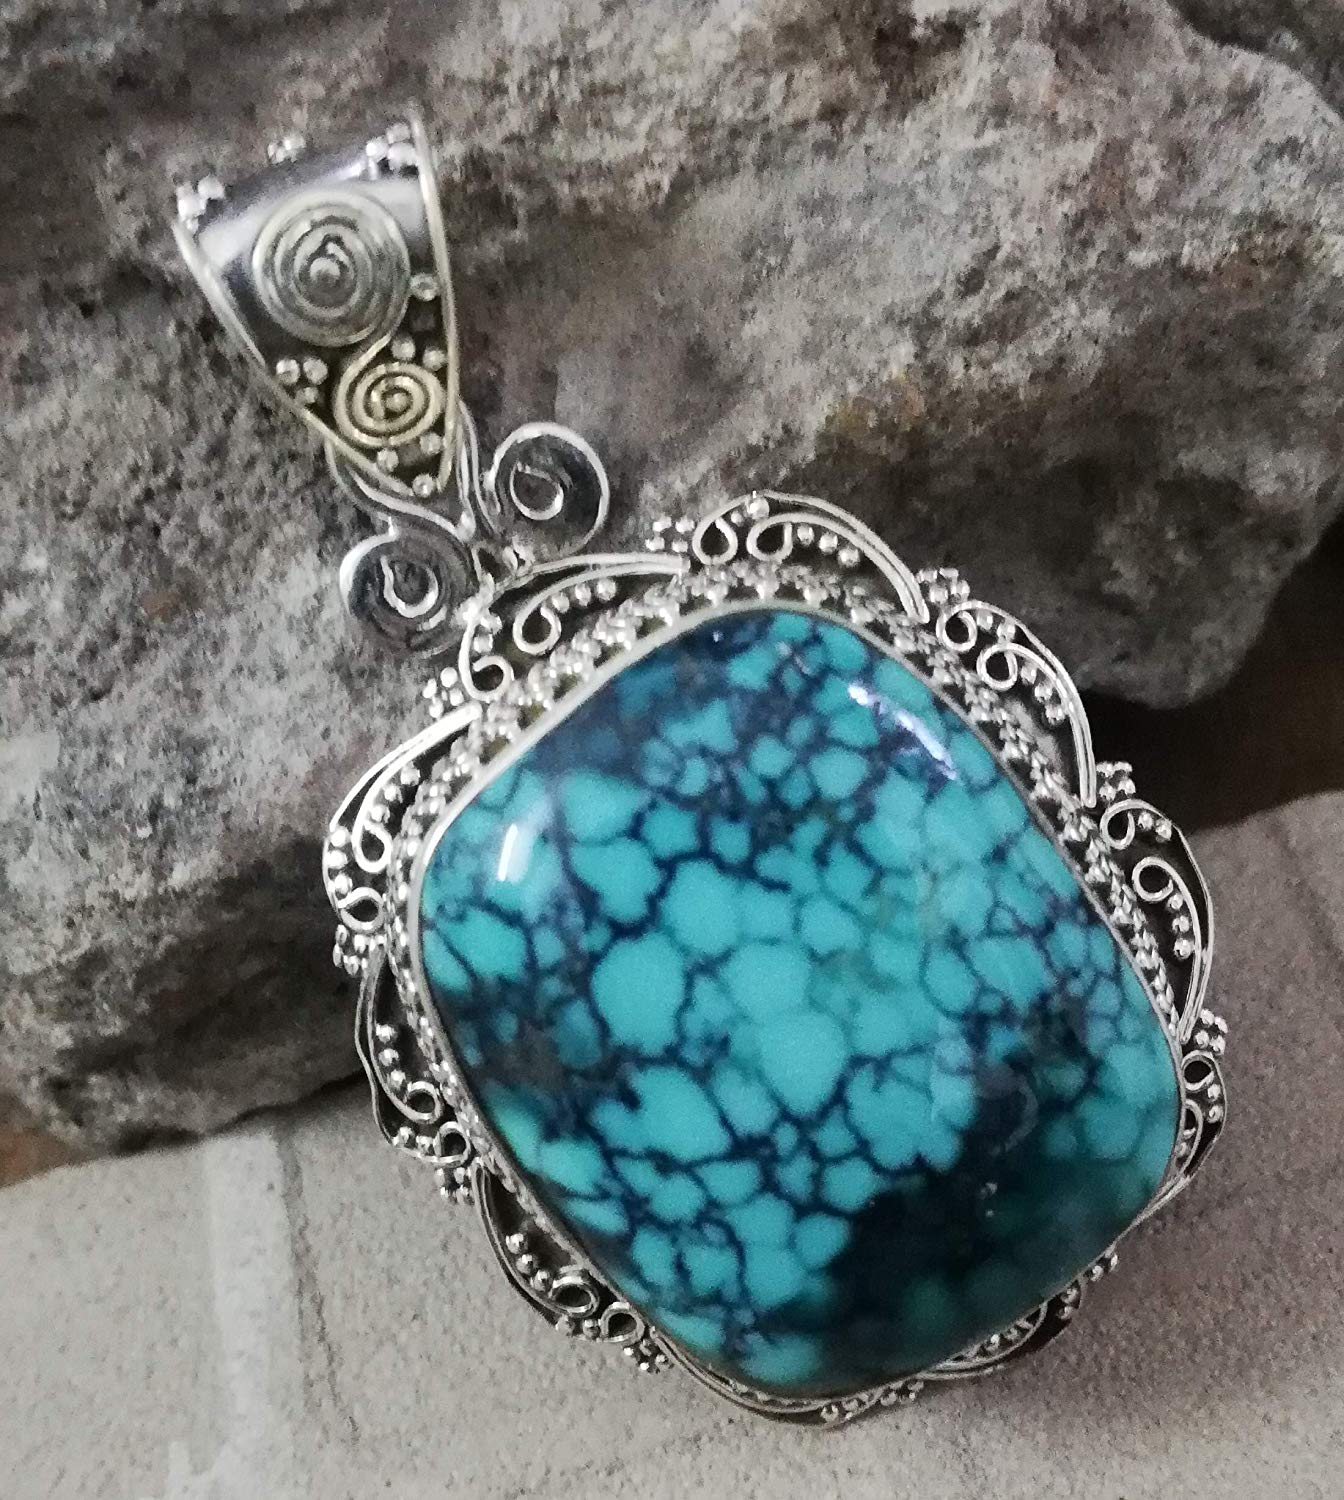 Turquoise Pendant 925 Sterling Silver Personalised Pendant Natural Blue Jewelry Southwestern Pendant Exquisite Design Pendant Victorian & Filigree Pendant Charming Pendant Waw Amazing Jewelry Gift Her